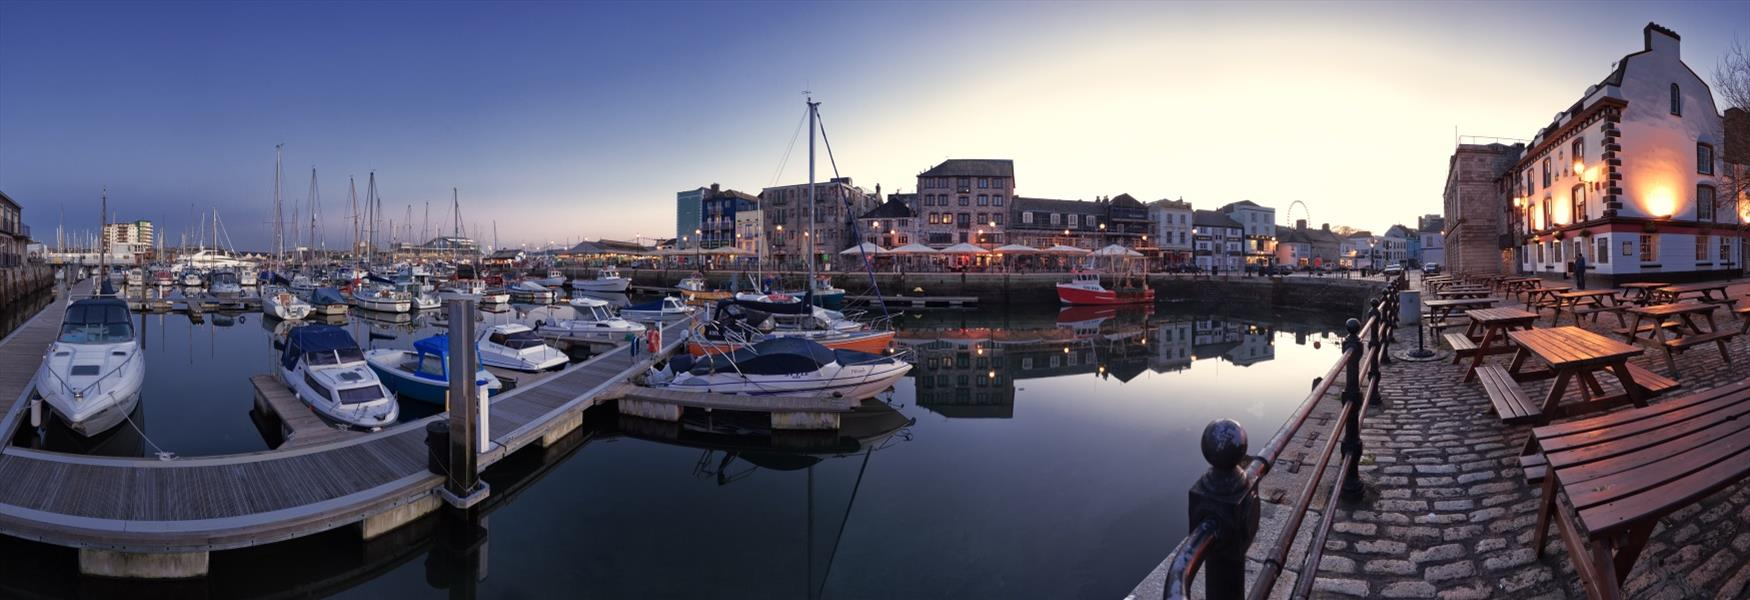 Plymouth Sutton Harbour